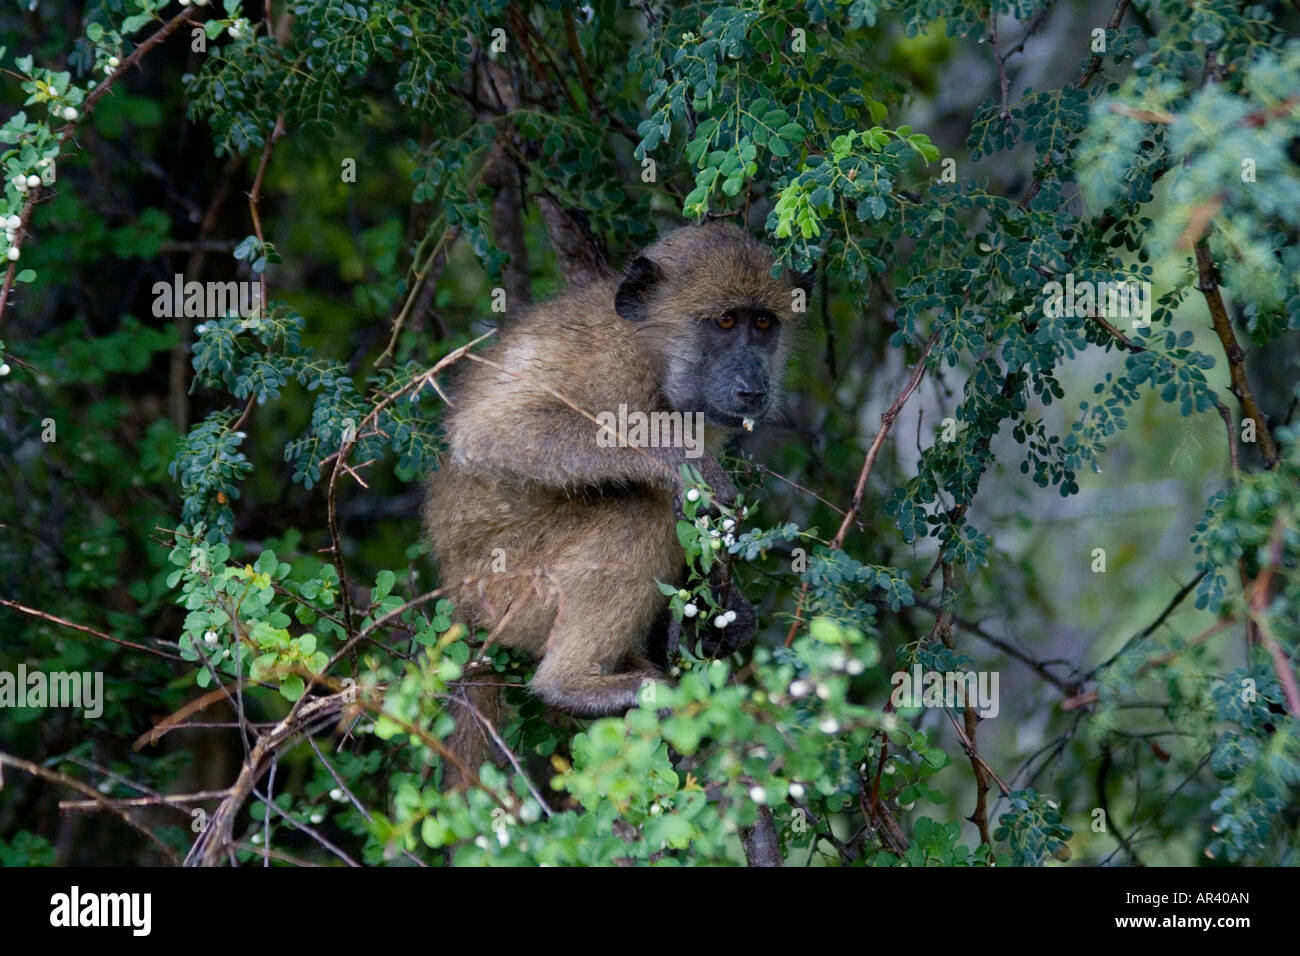 Young baboon eats berries in Kruger National Park, South Africa. Although omnivorous their diet is mostly vegetarian - Stock Image